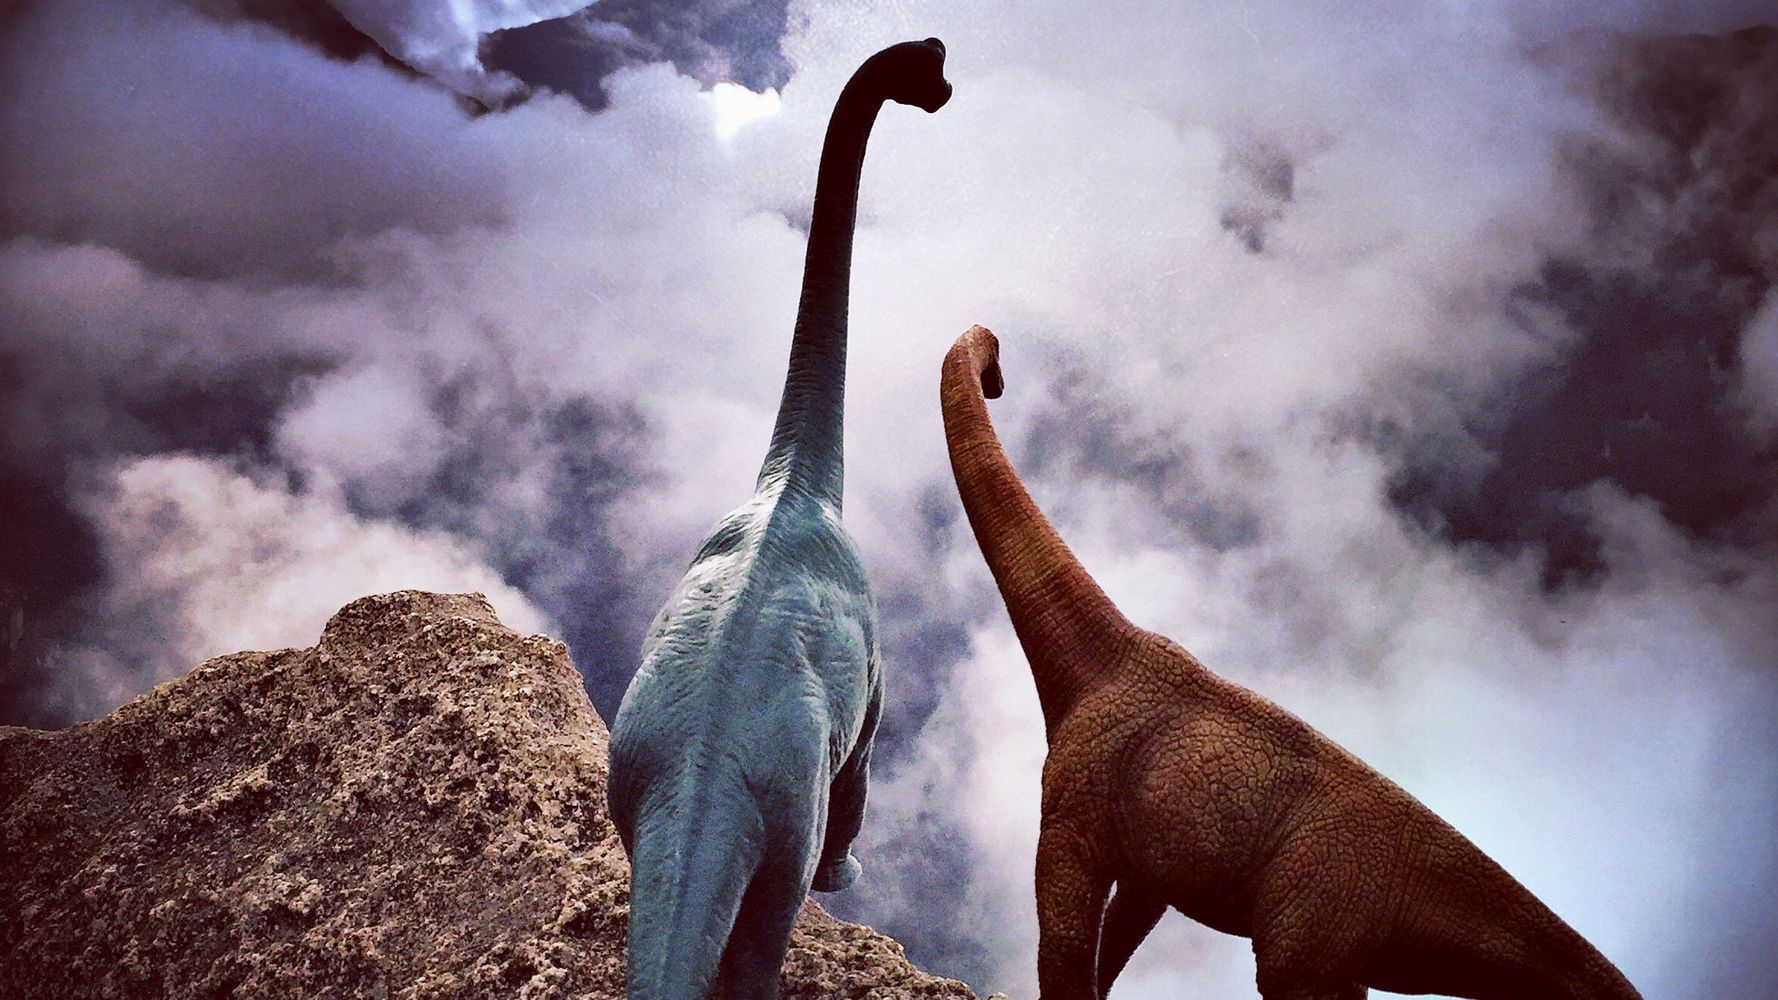 Dino Toys In Travel Photos Are Awesomesaurus